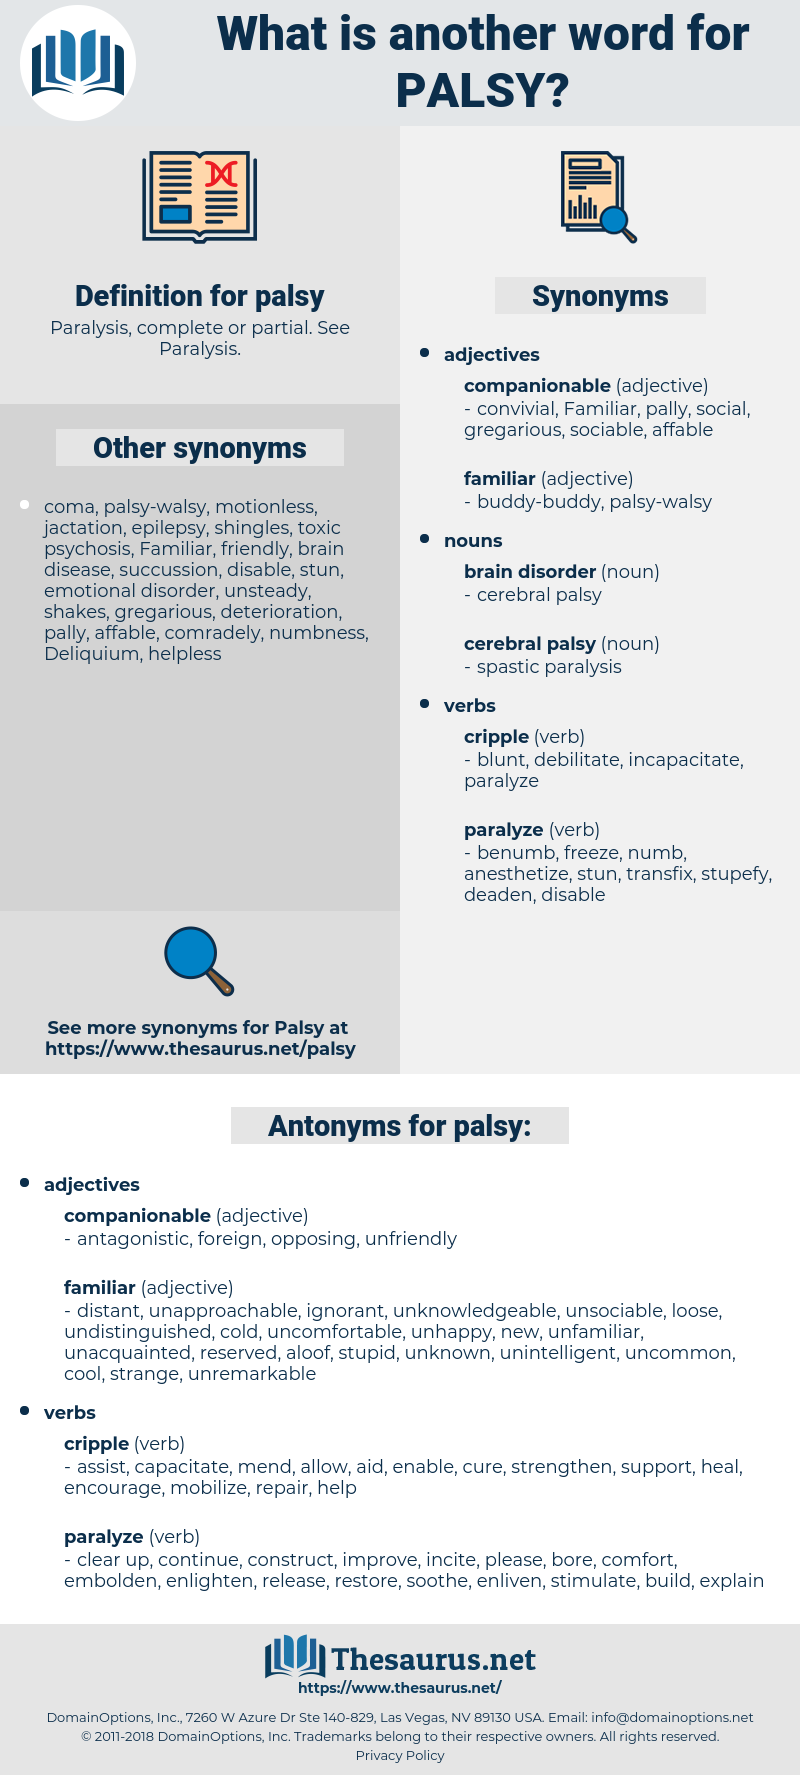 palsy, synonym palsy, another word for palsy, words like palsy, thesaurus palsy